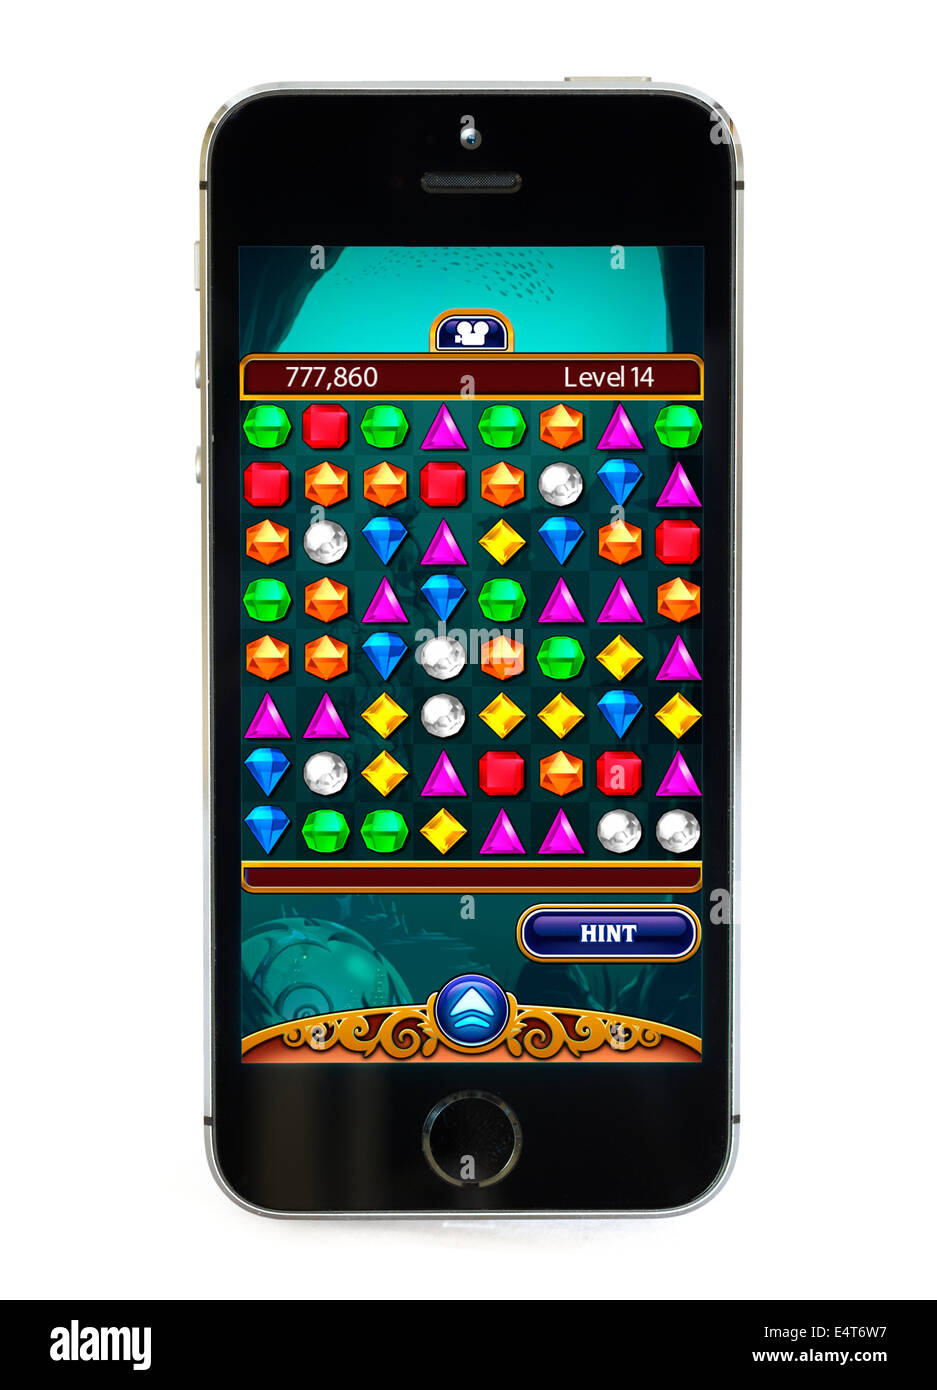 Playing the popular free game Bejeweled on an Apple iPhone 5S - Stock Image